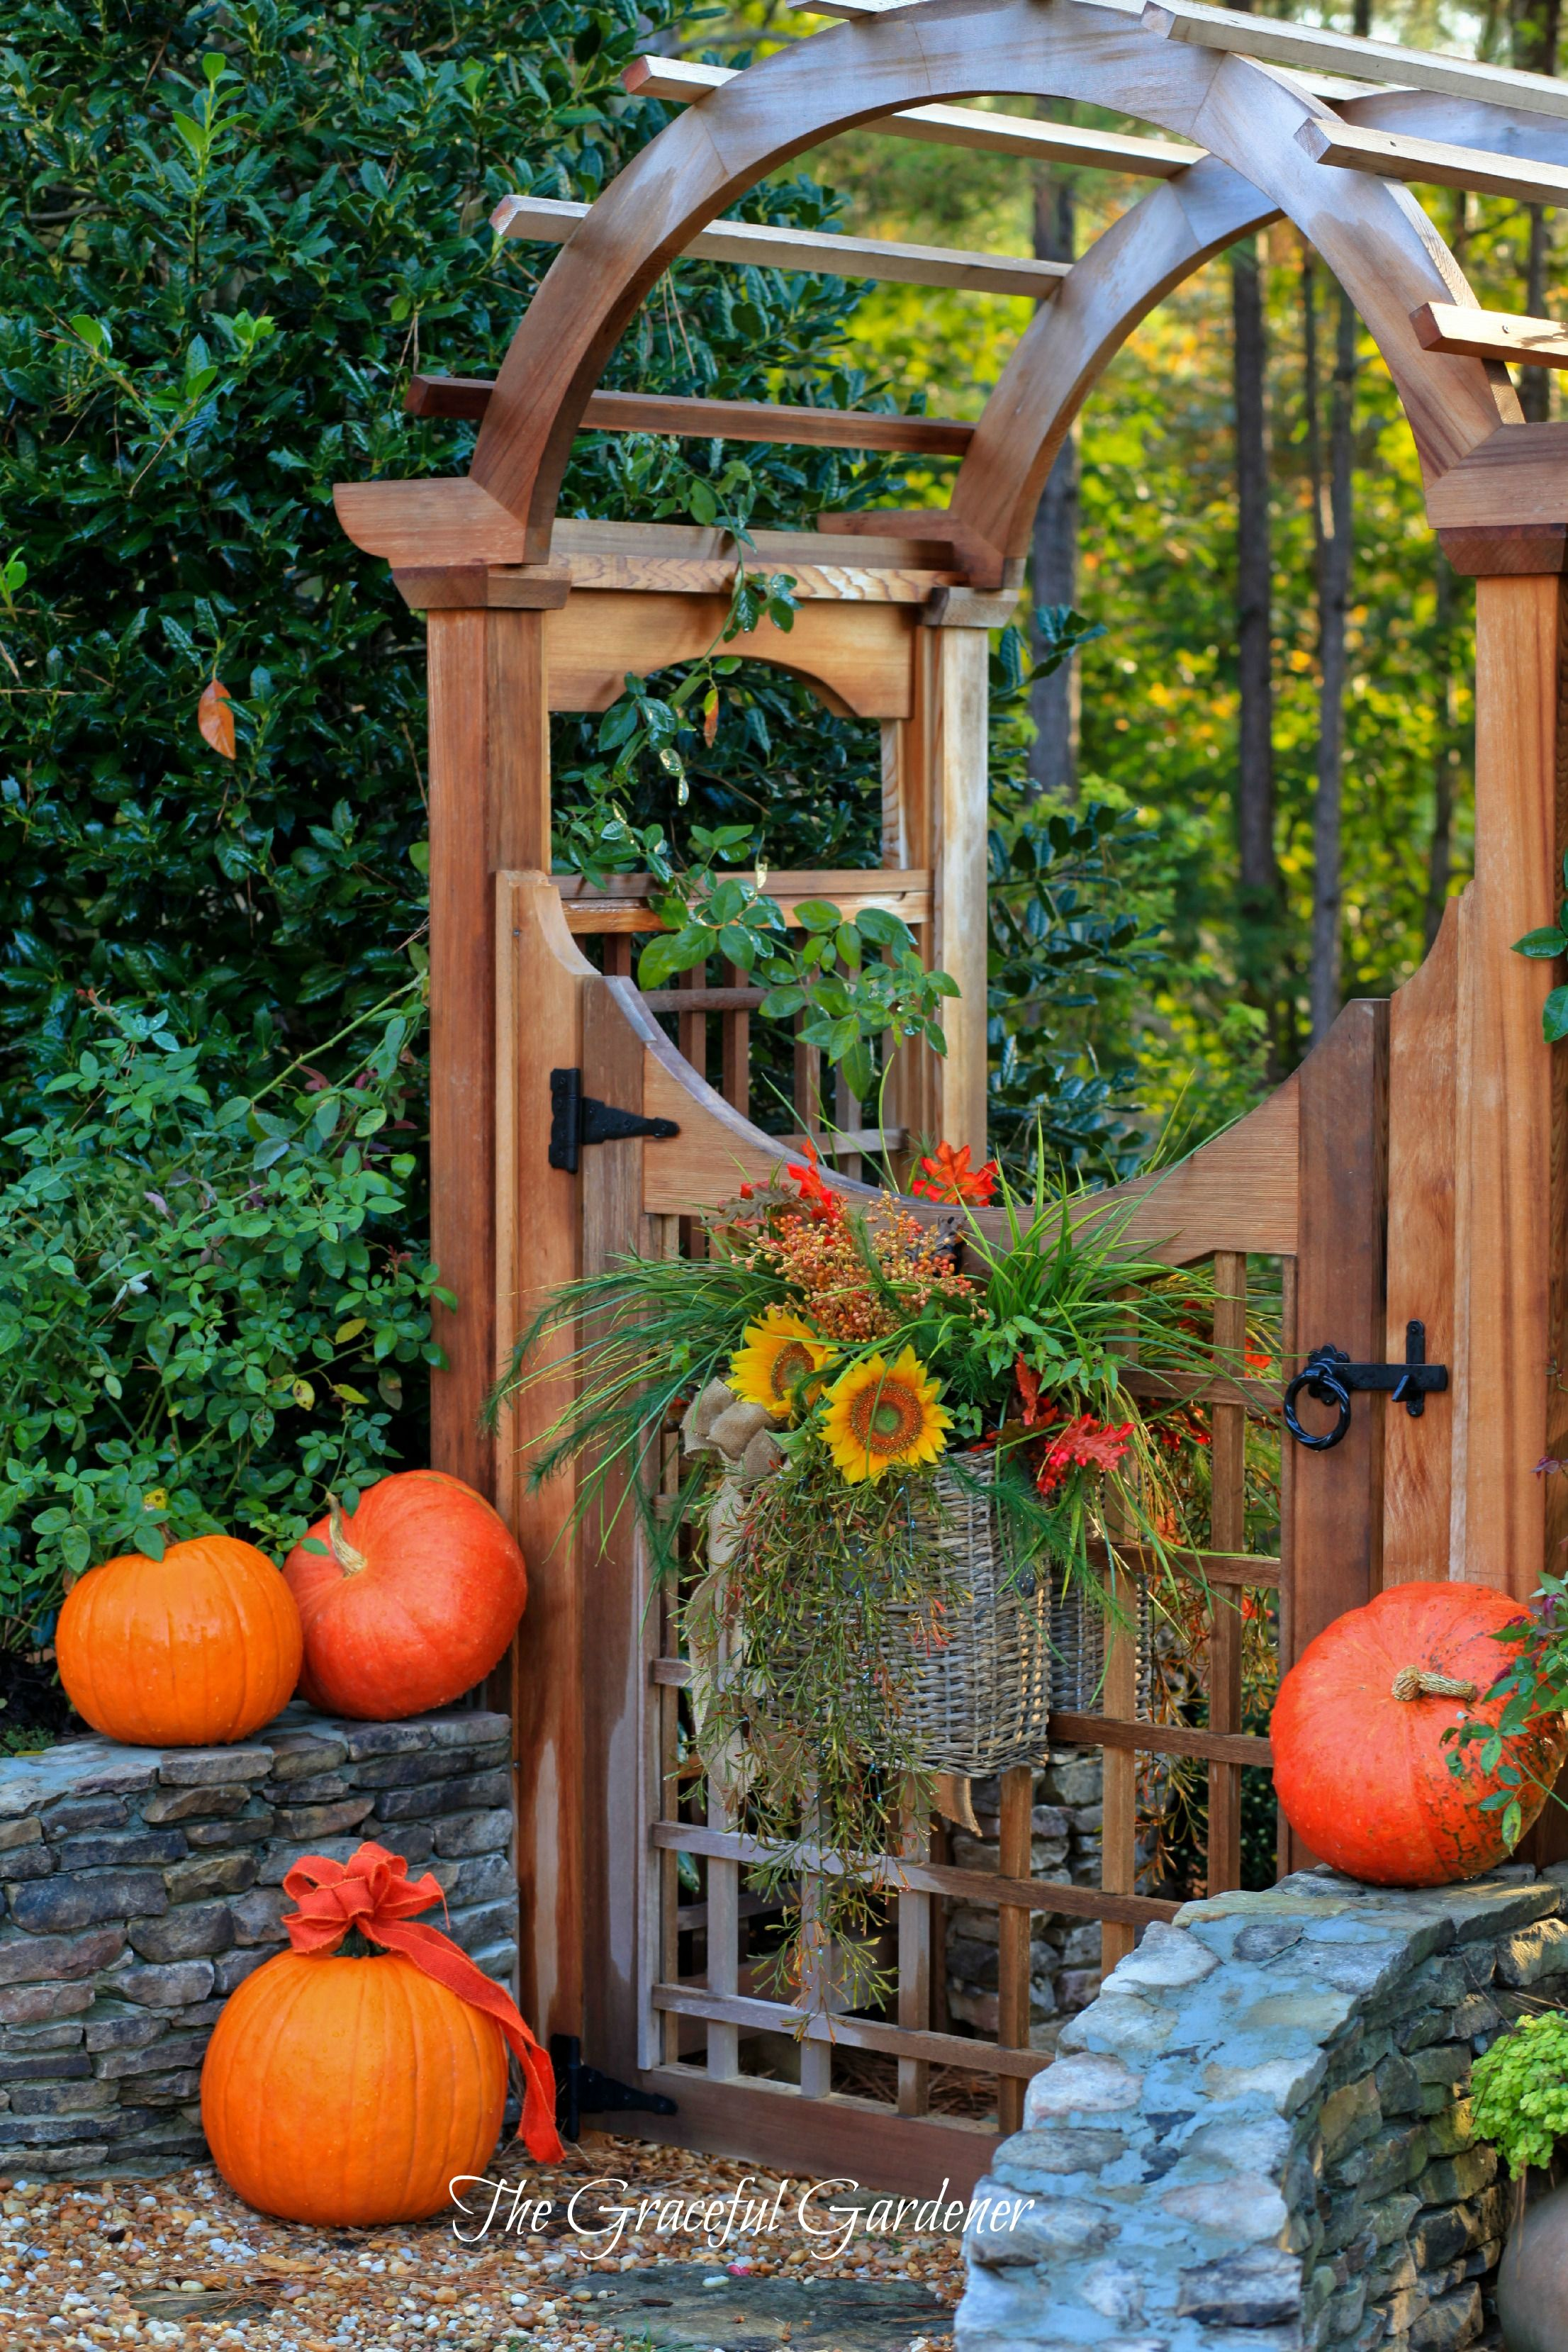 Pin by john on diy pinterest garden gates garden and autumn garden